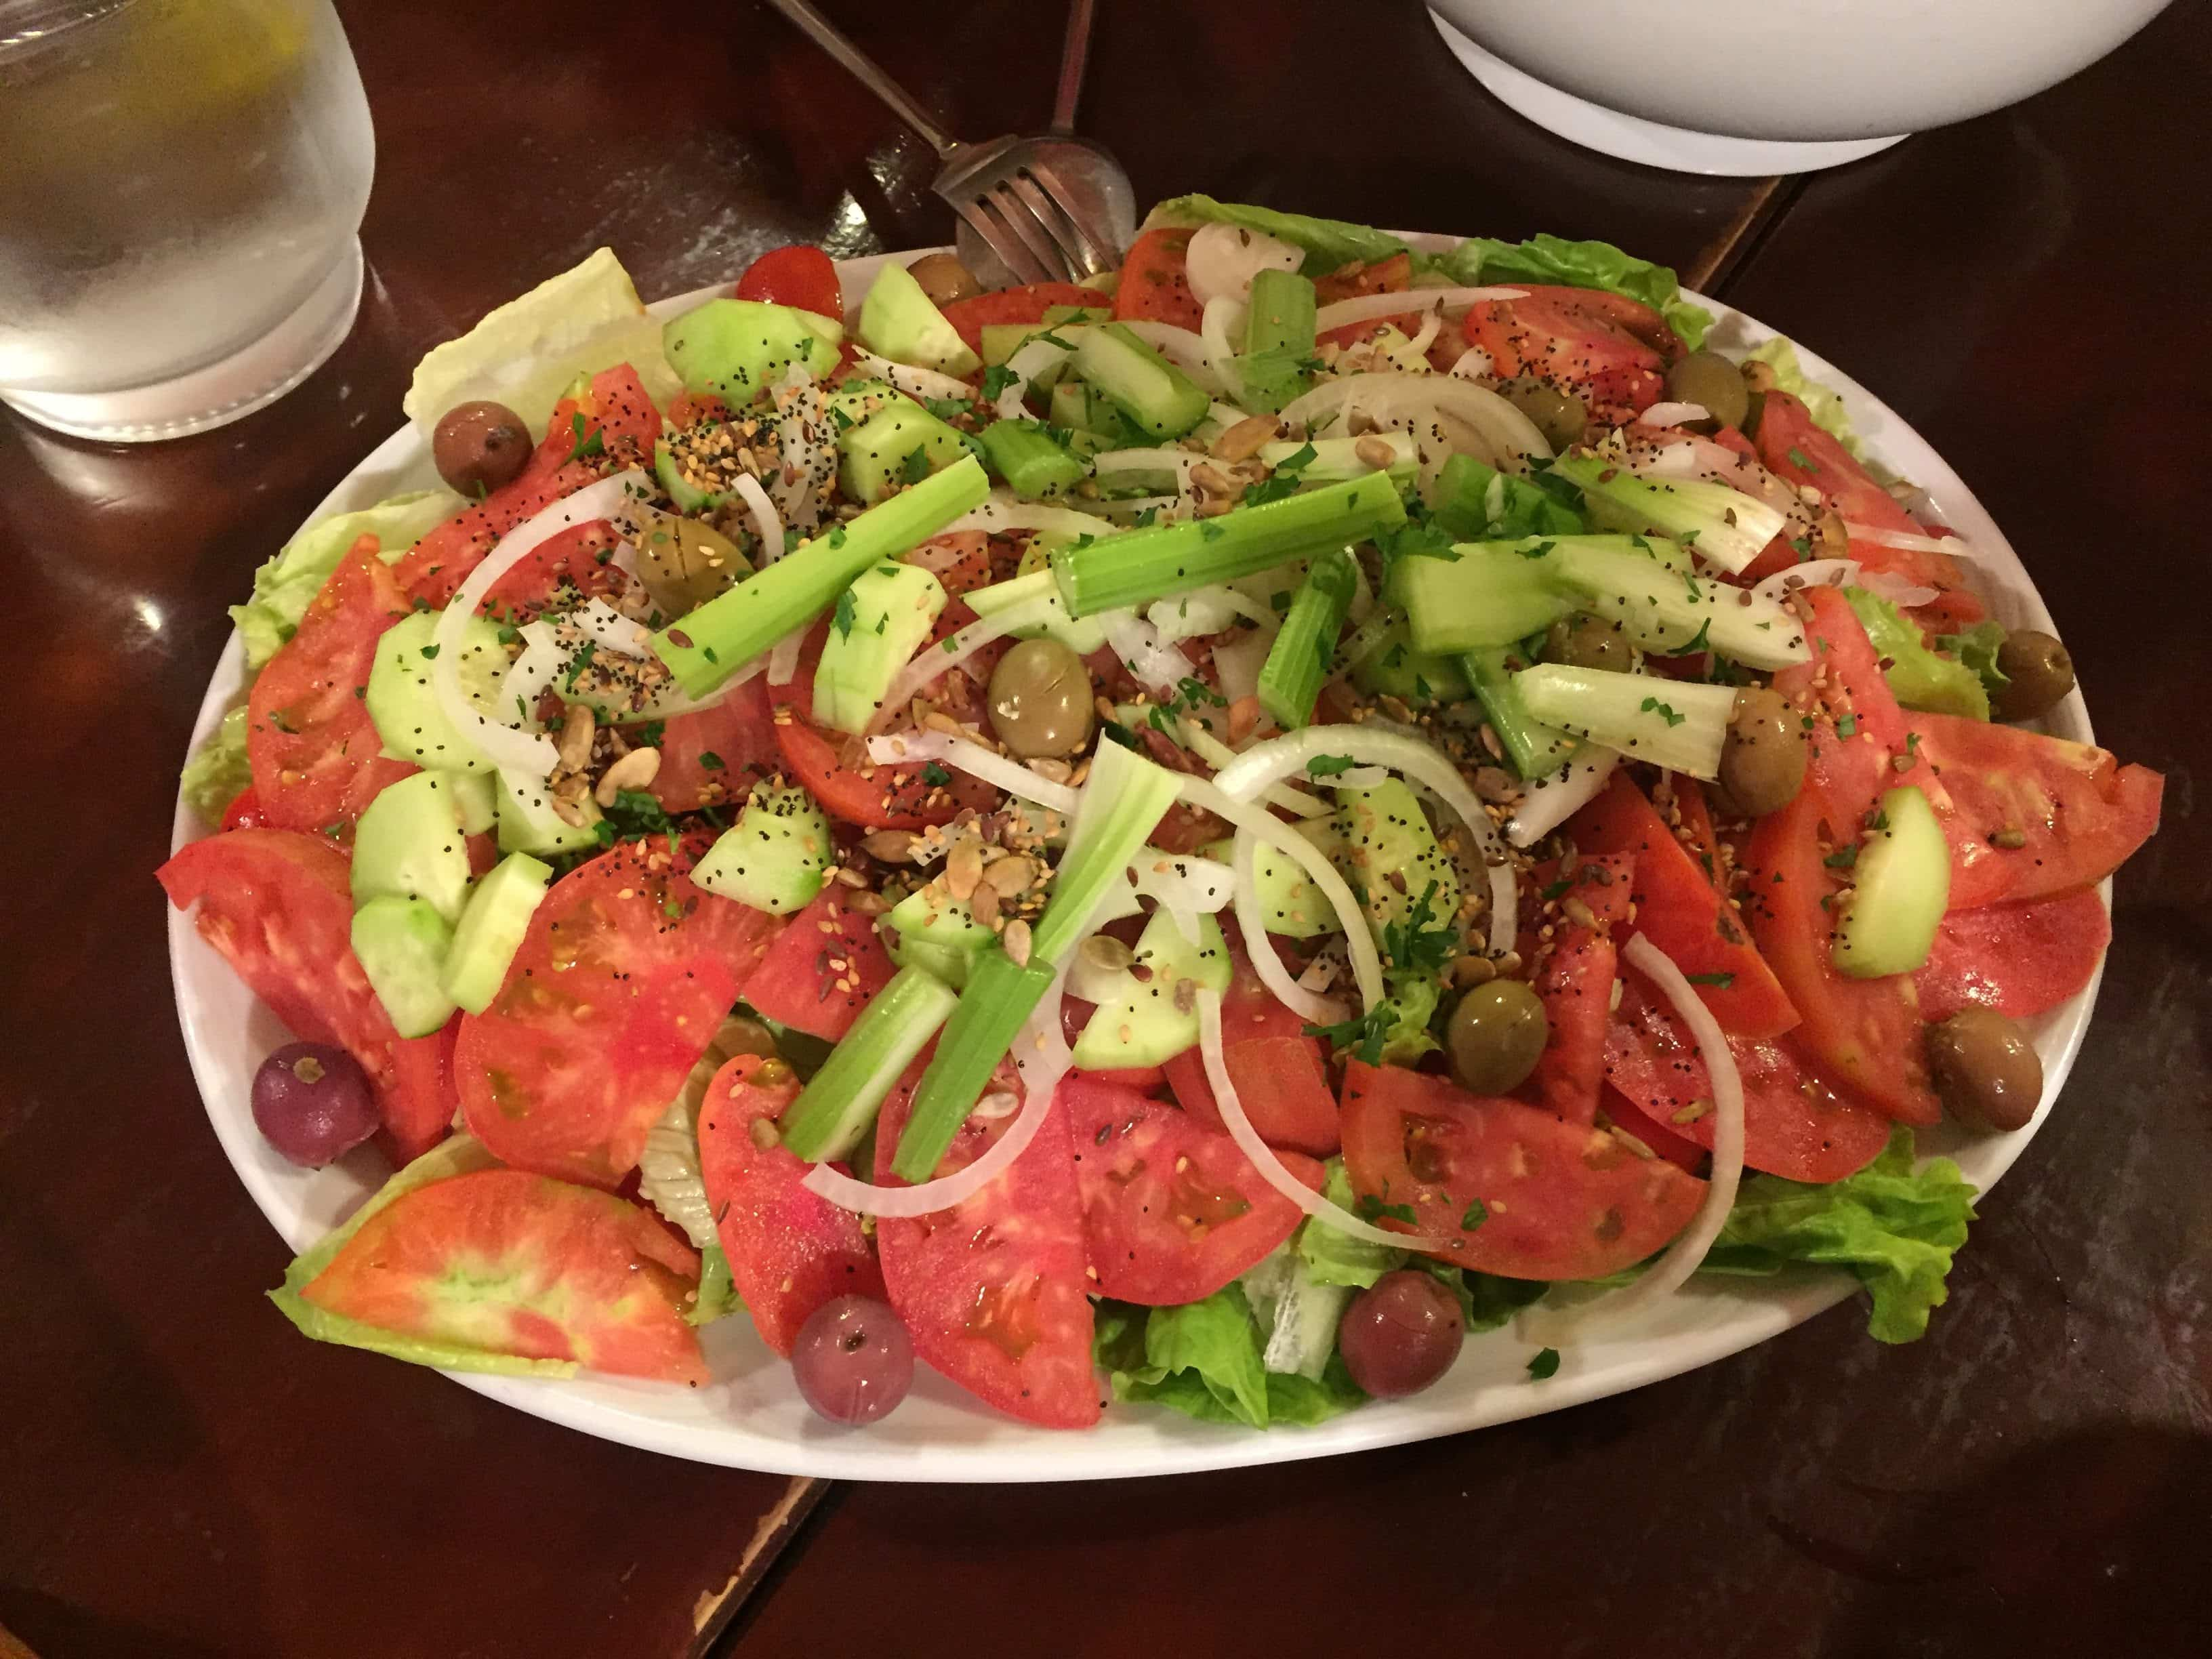 The most amazing salad